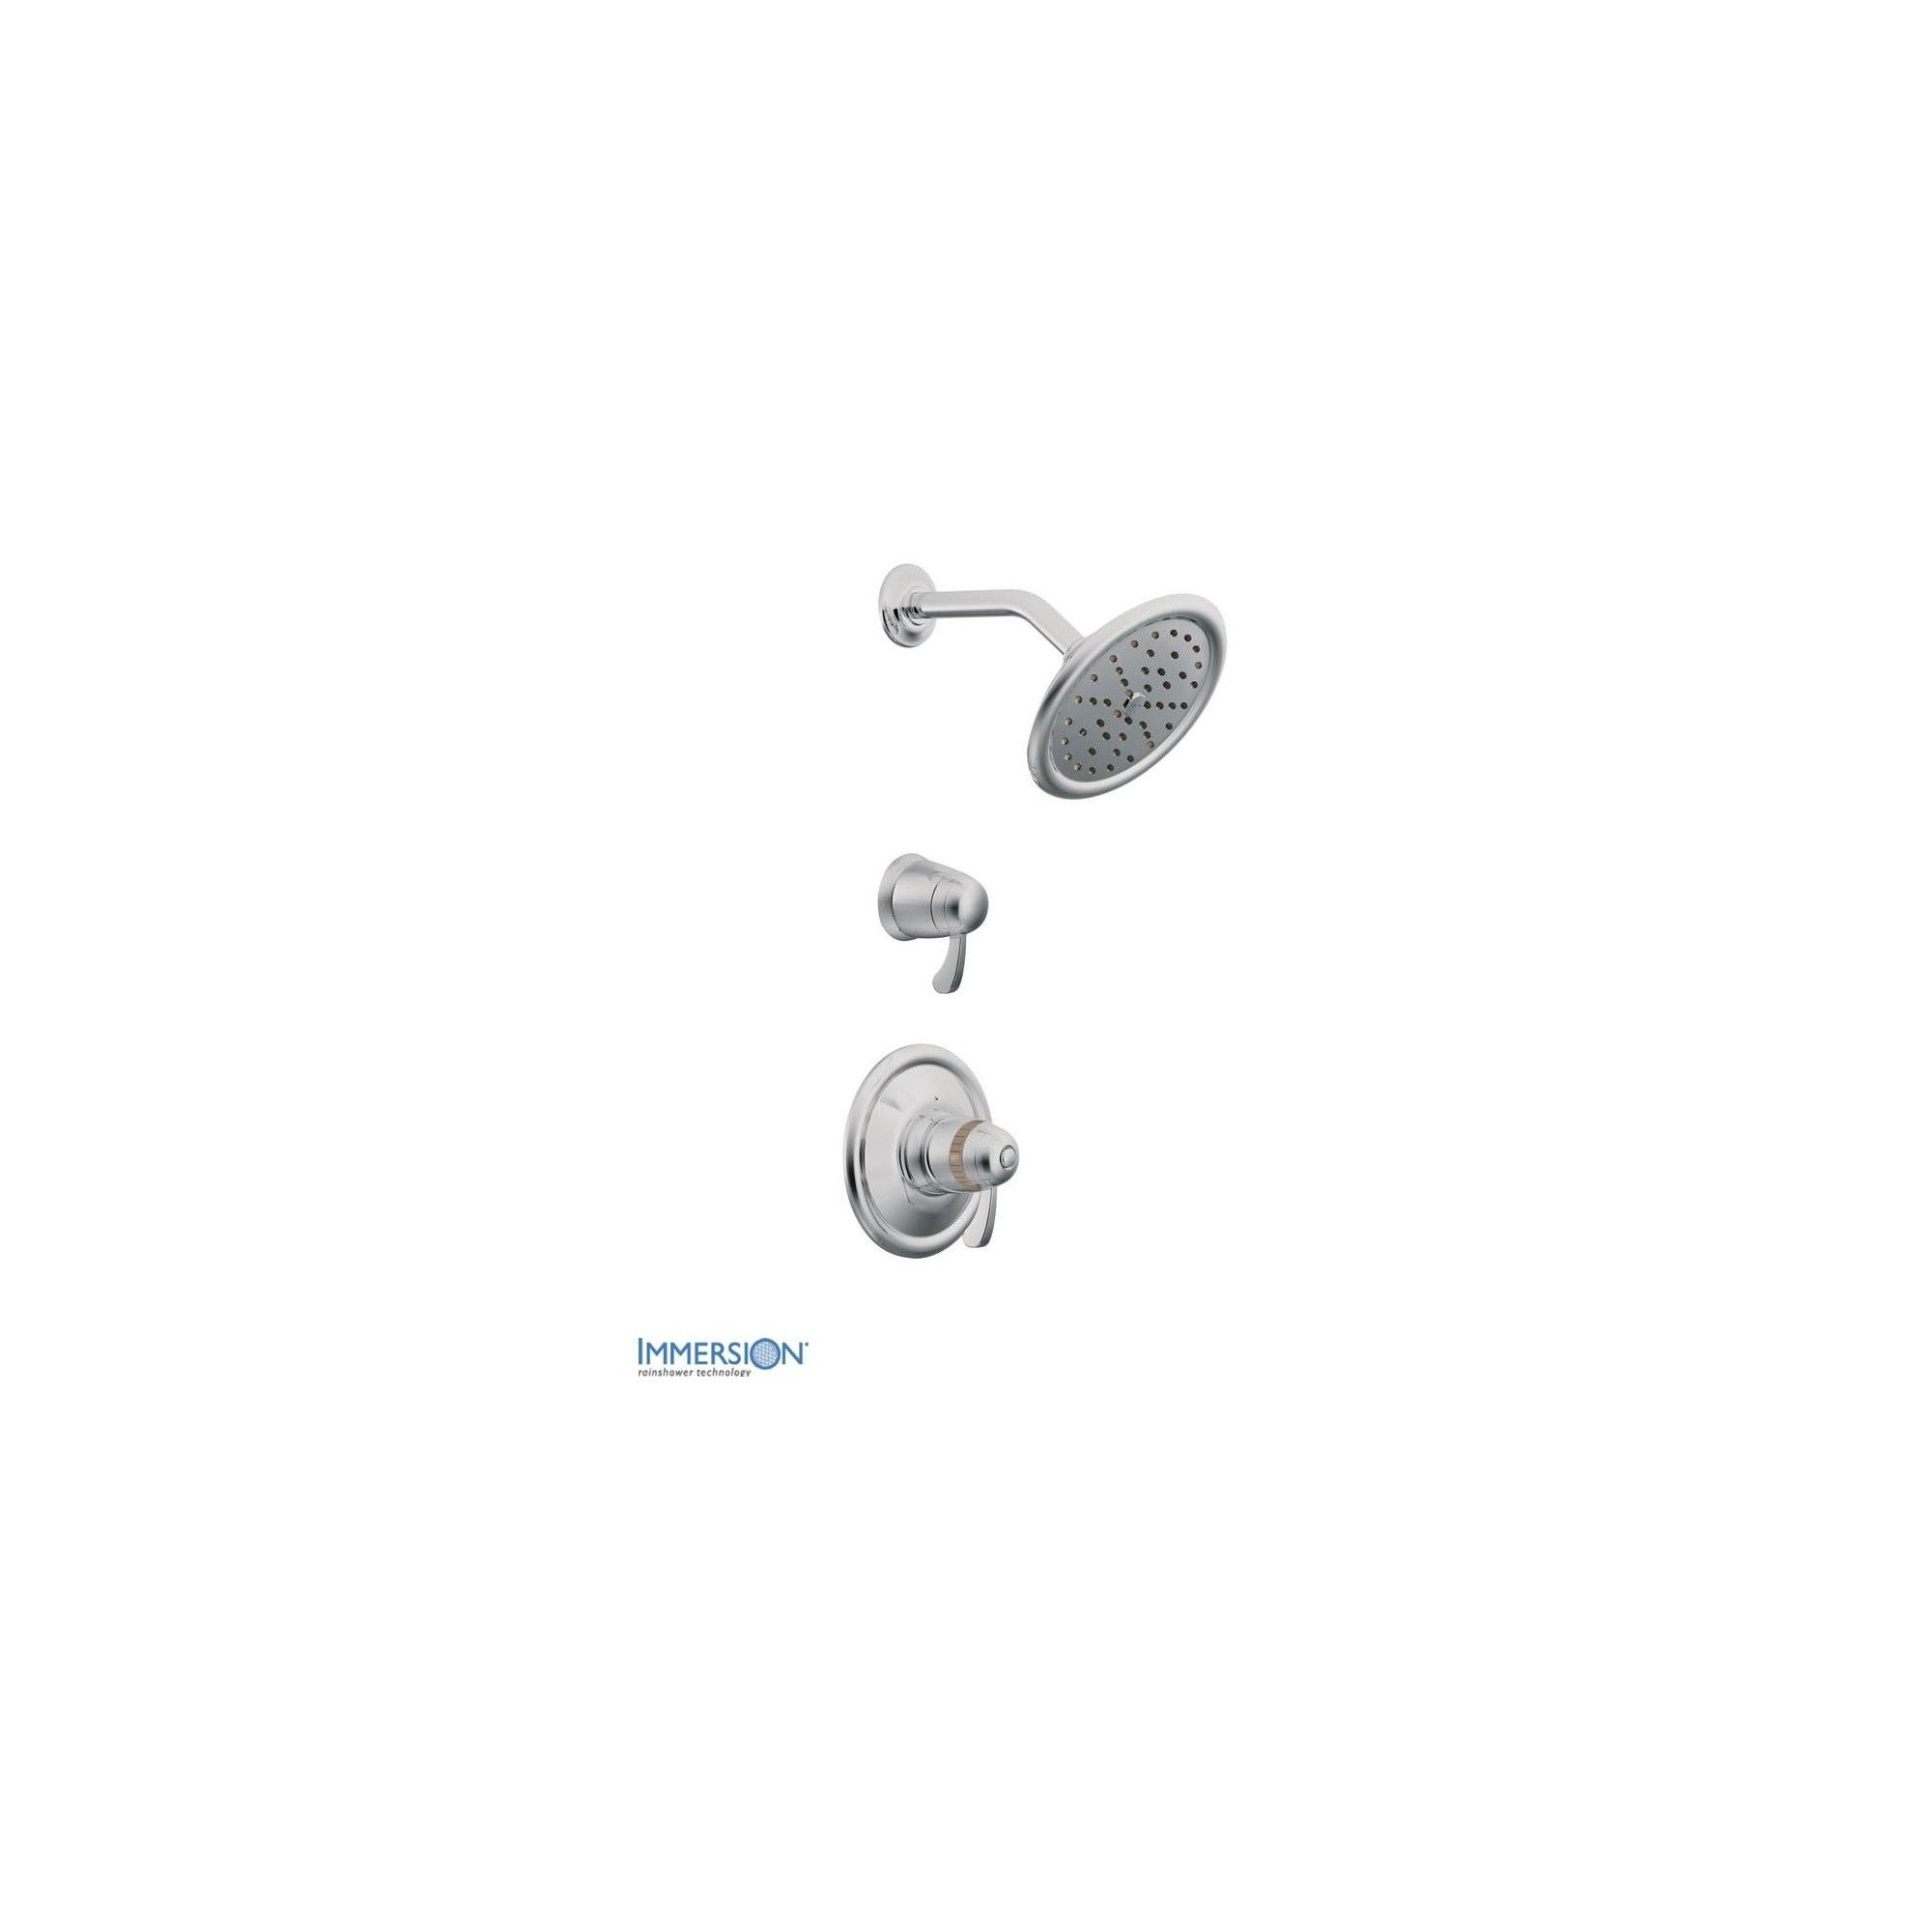 Moen Ts3400 Double Handle Exacttemp Thermostatic Shower Trim With